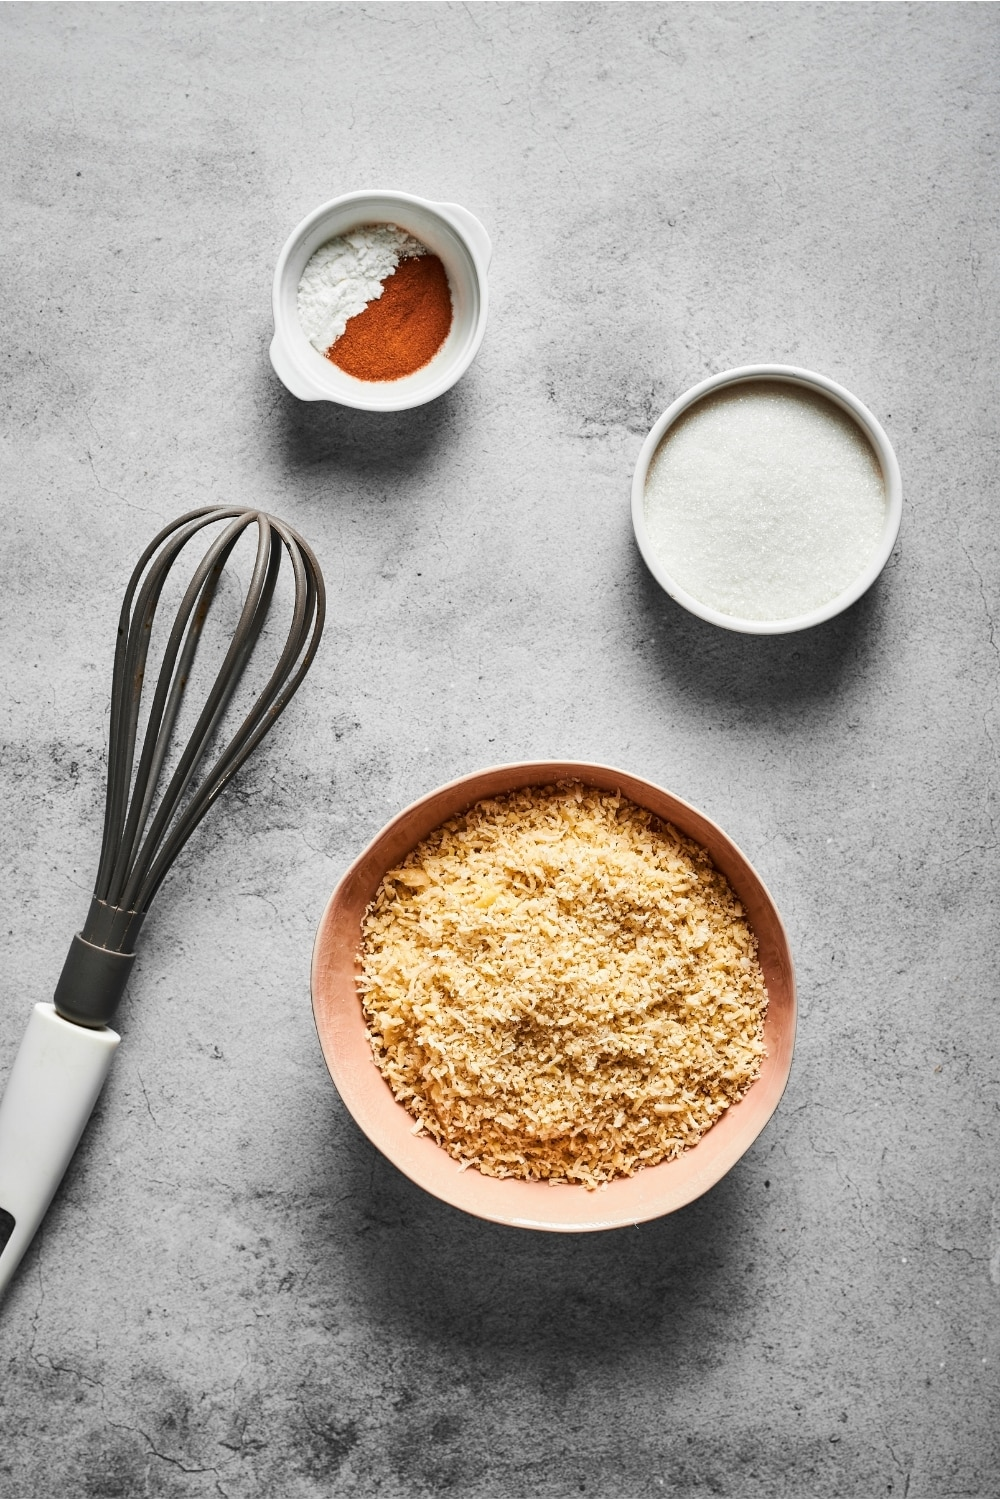 Small bowl of cinnamon and baking powder, a small bowl of confectioners erythritol, a small bowl of almond flour, and a whisk on a gray counter